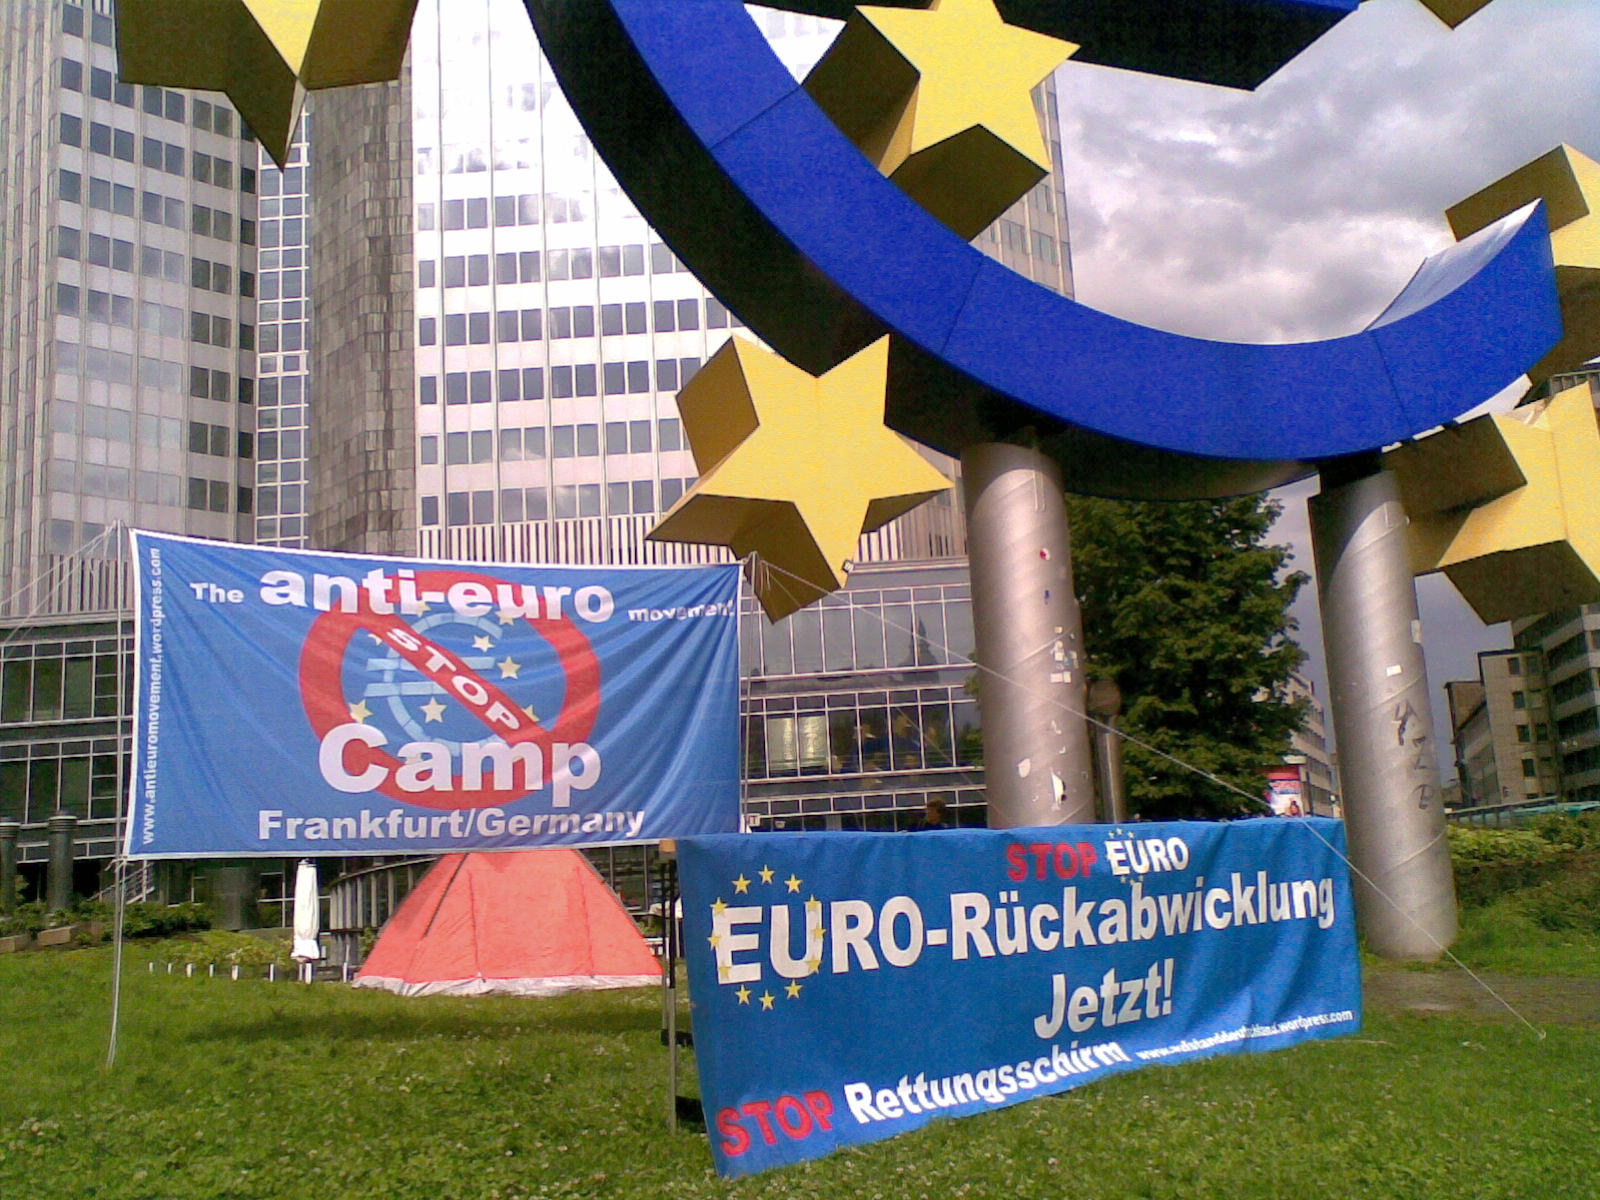 anti-euro-camp-frankfurt-germany[1].jpg